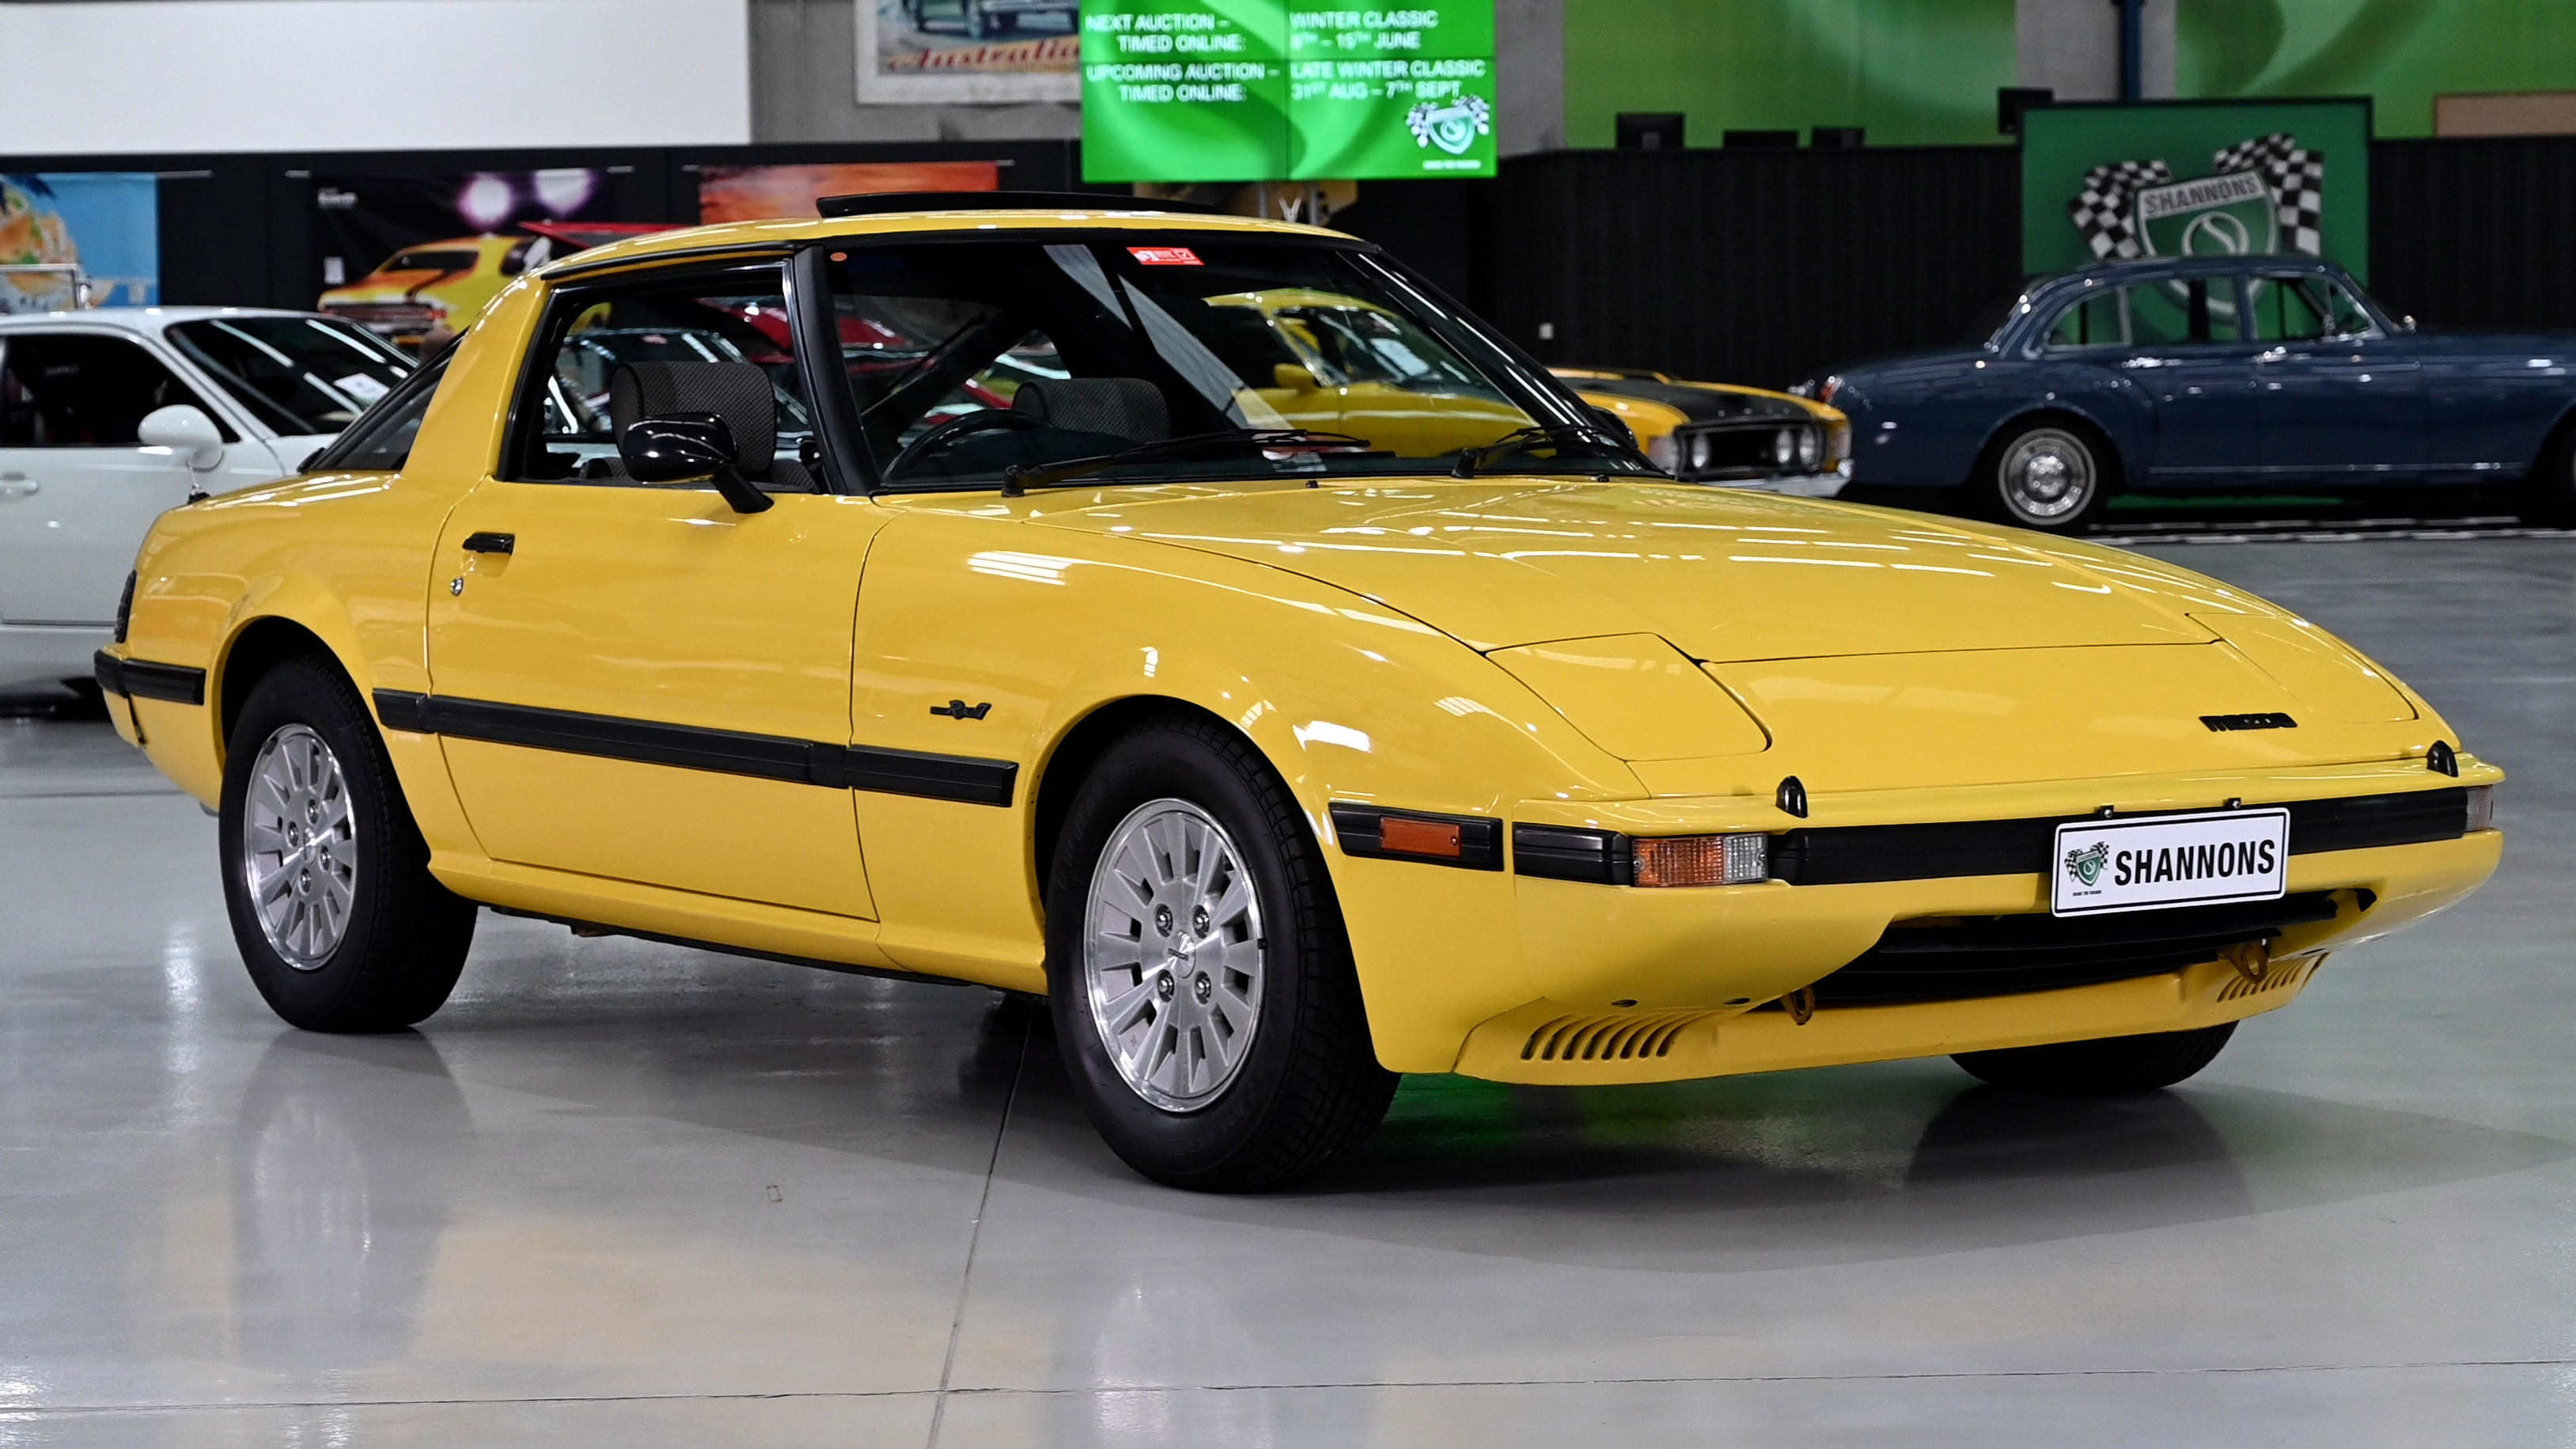 1983 Mazda RX7 Series 3 Coupe - 2021 Shannons Winter Timed Online Auction